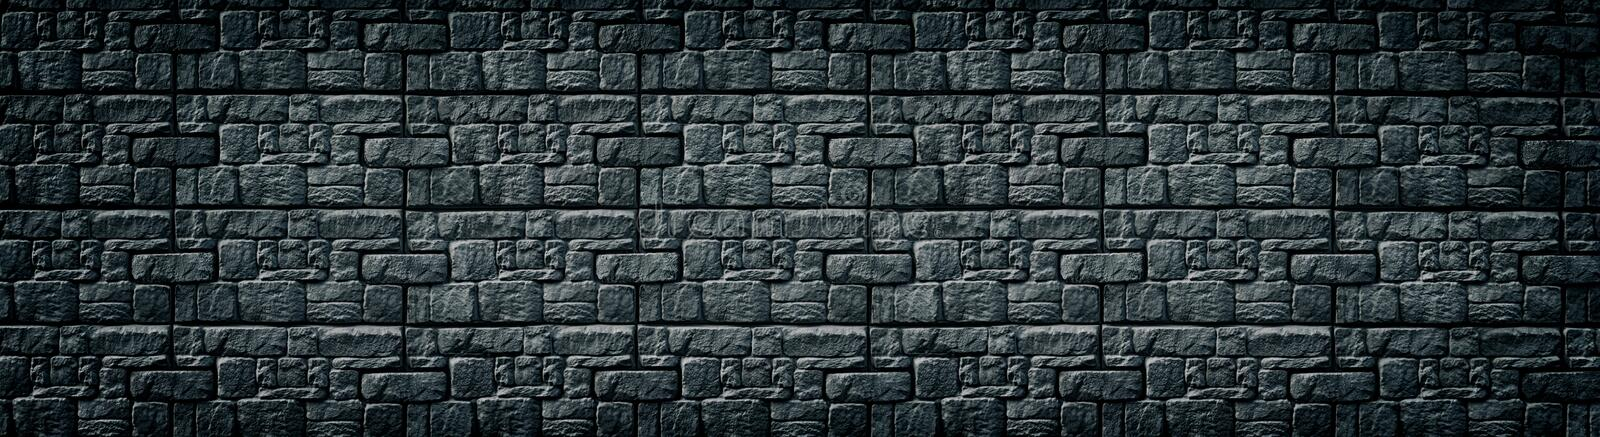 Black patterned tile wall wide texture. Dark masonry large backdrop. Gloomy gothic background. Black patterned tile wall wide texture. Dark masonry long backdrop stock illustration